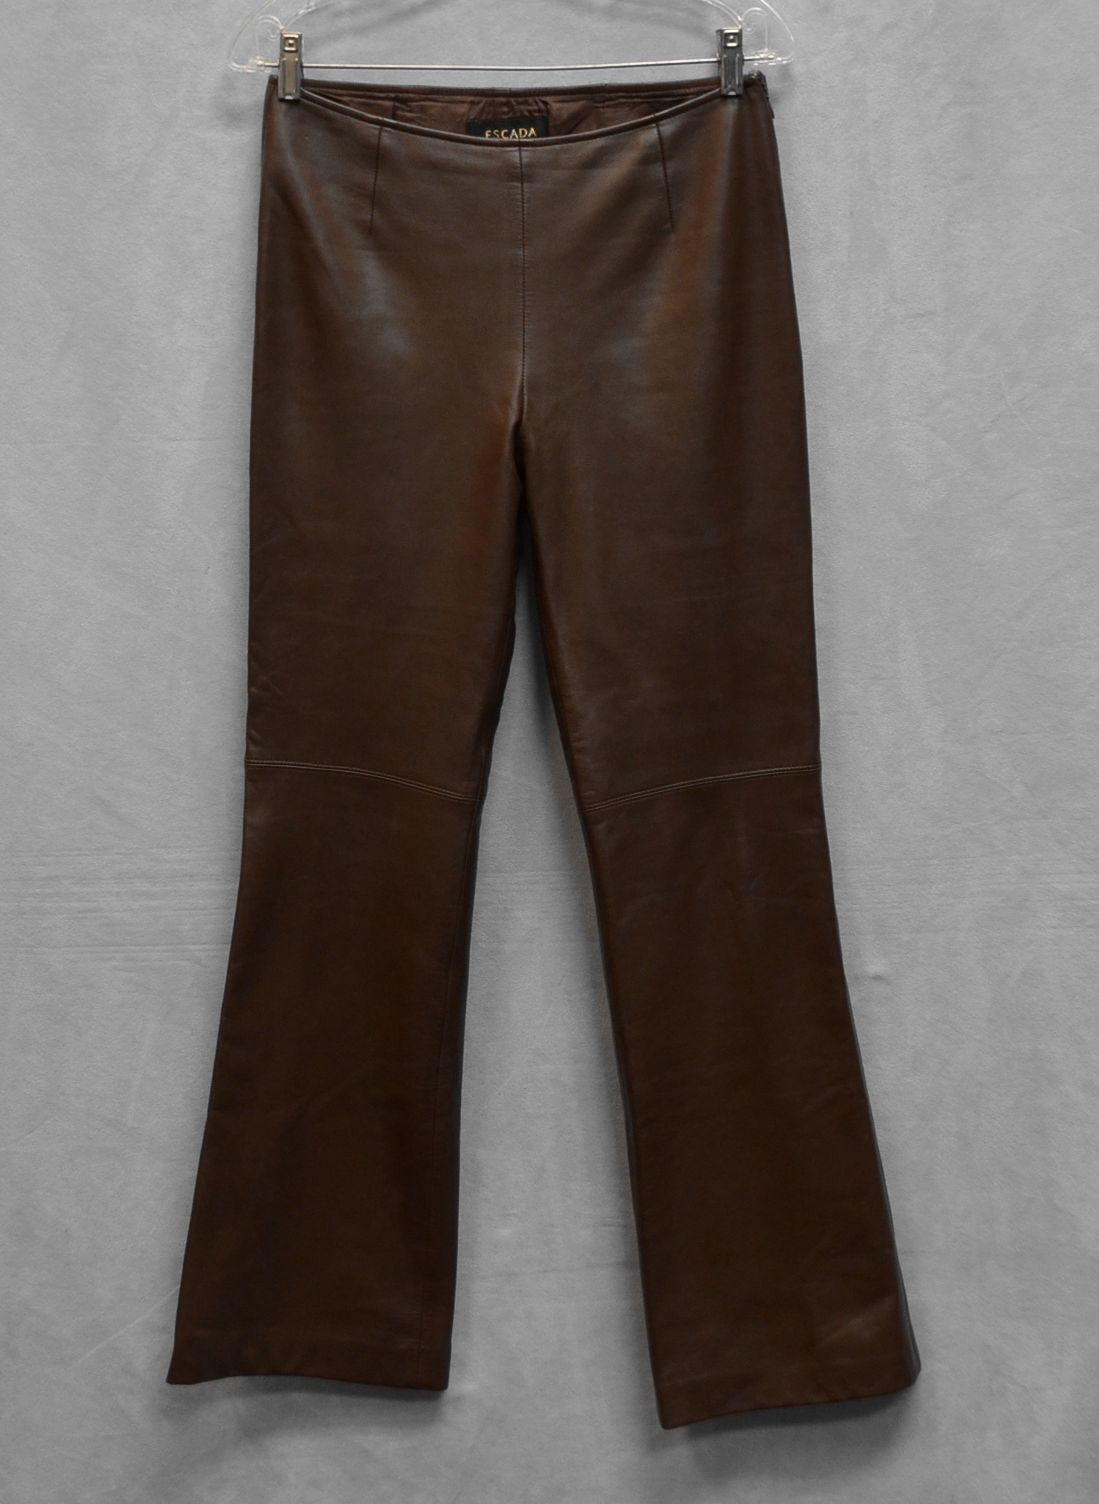 C0 Auth ESCADA Brown Soft Leather Side Zipper Flare Pants Size